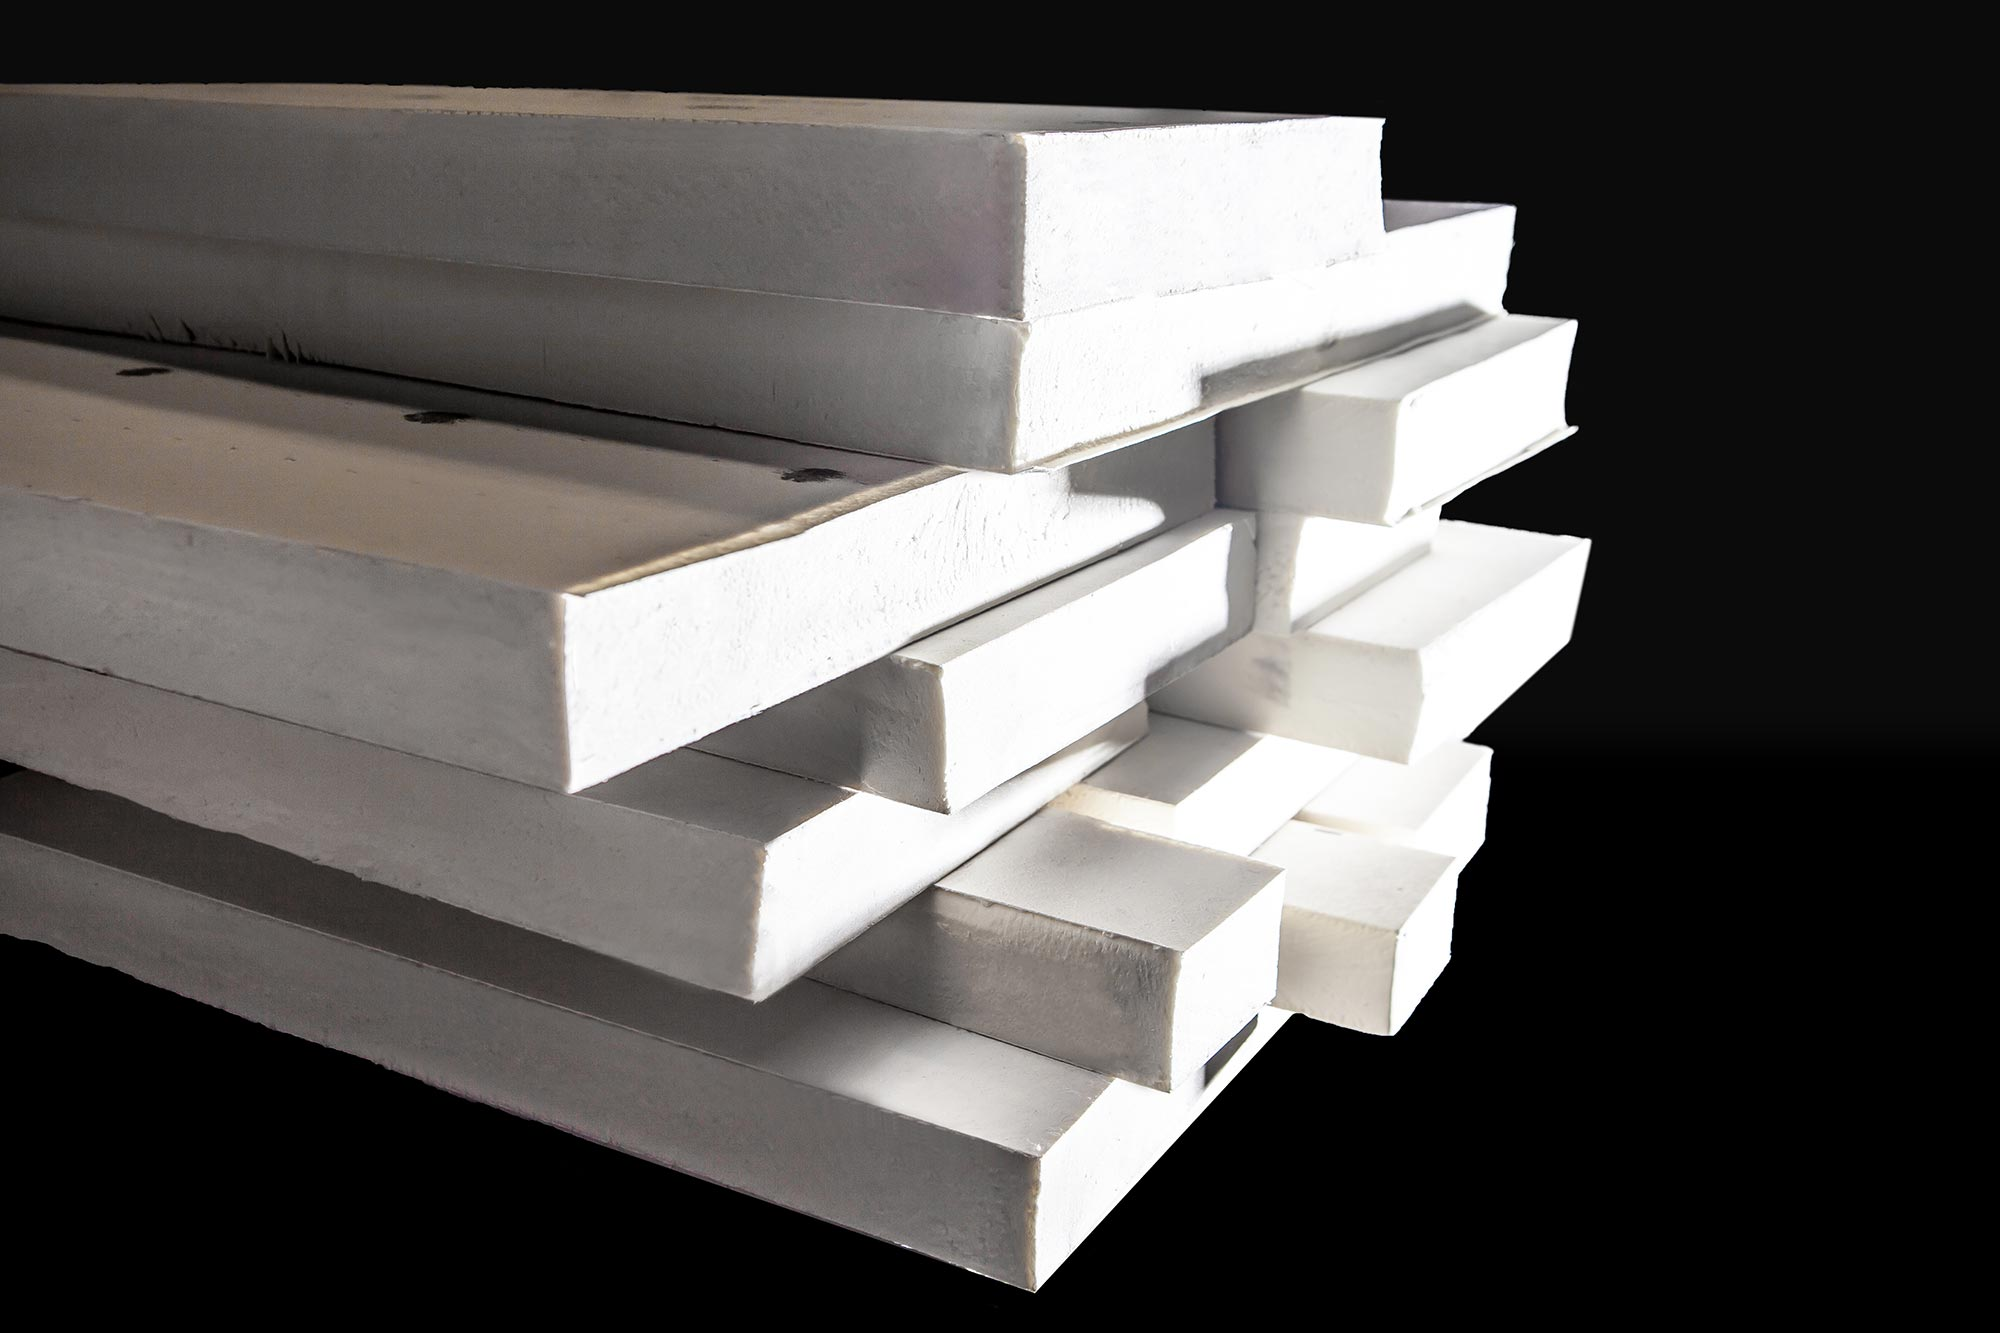 Image showing a pile of polyisocyanurate insulation panels.